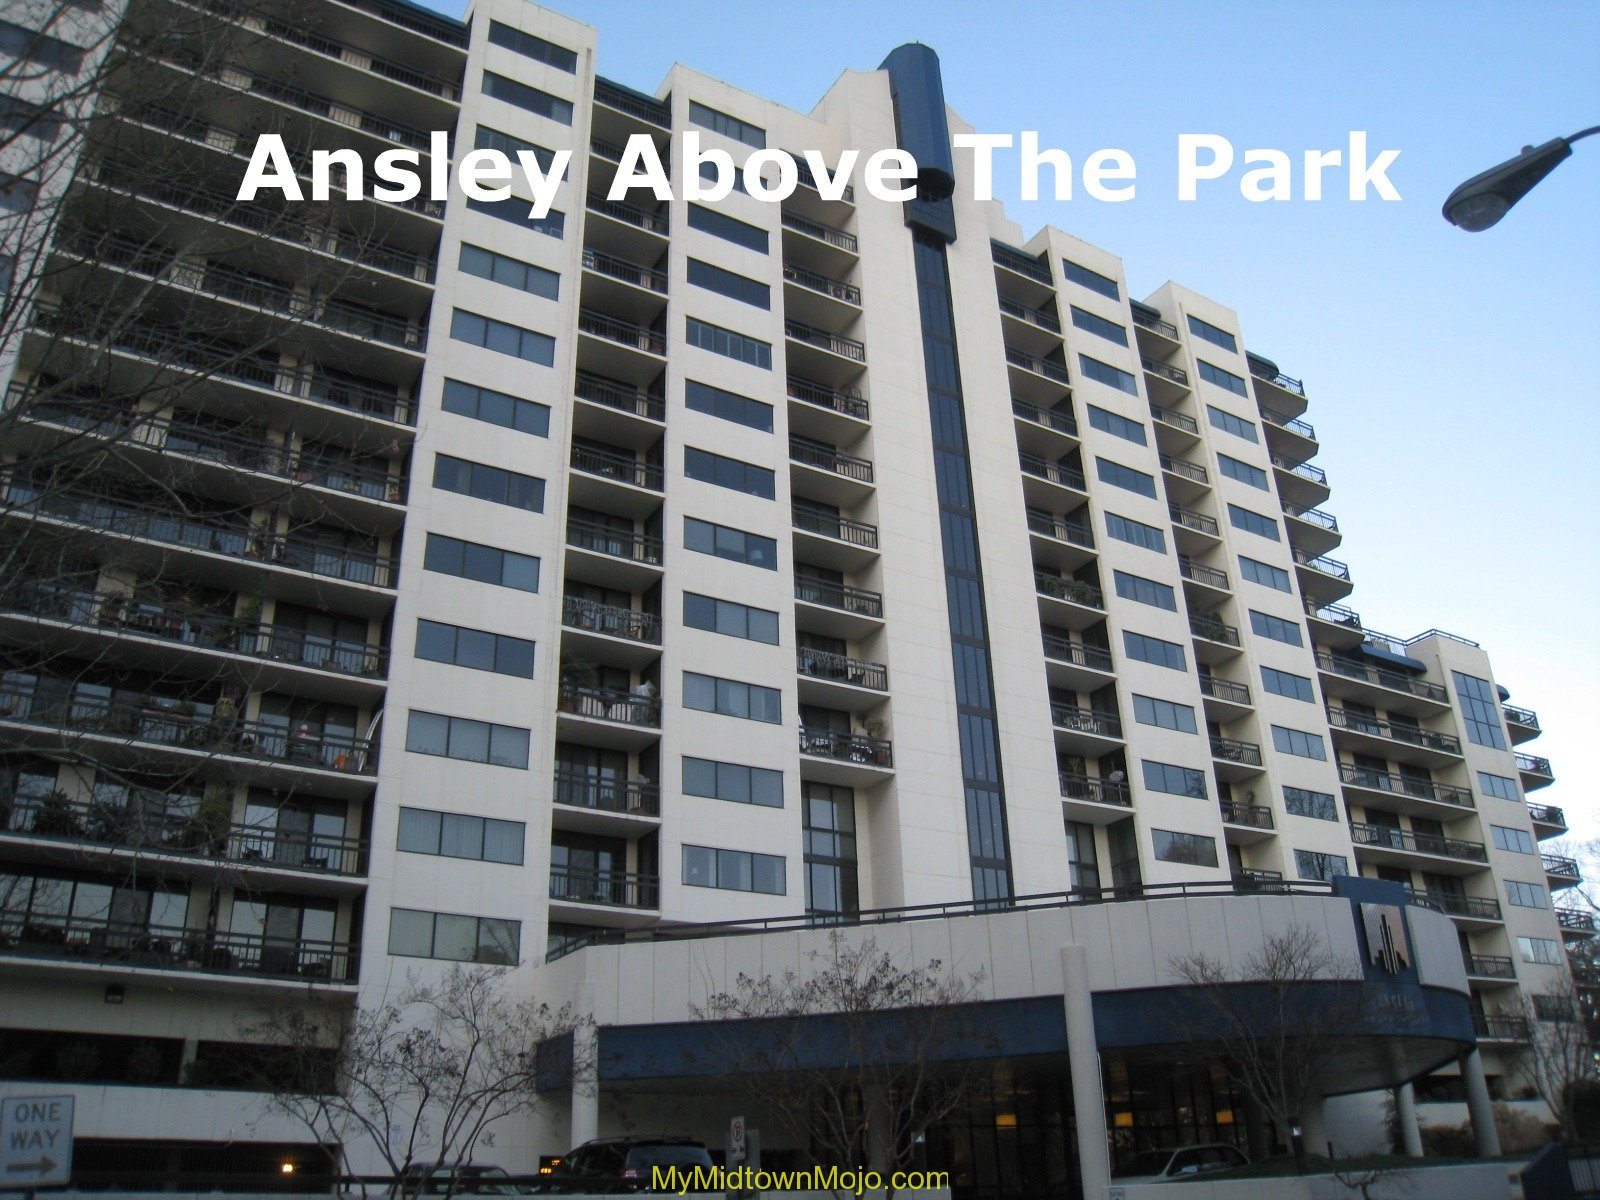 Ansley Above The Park